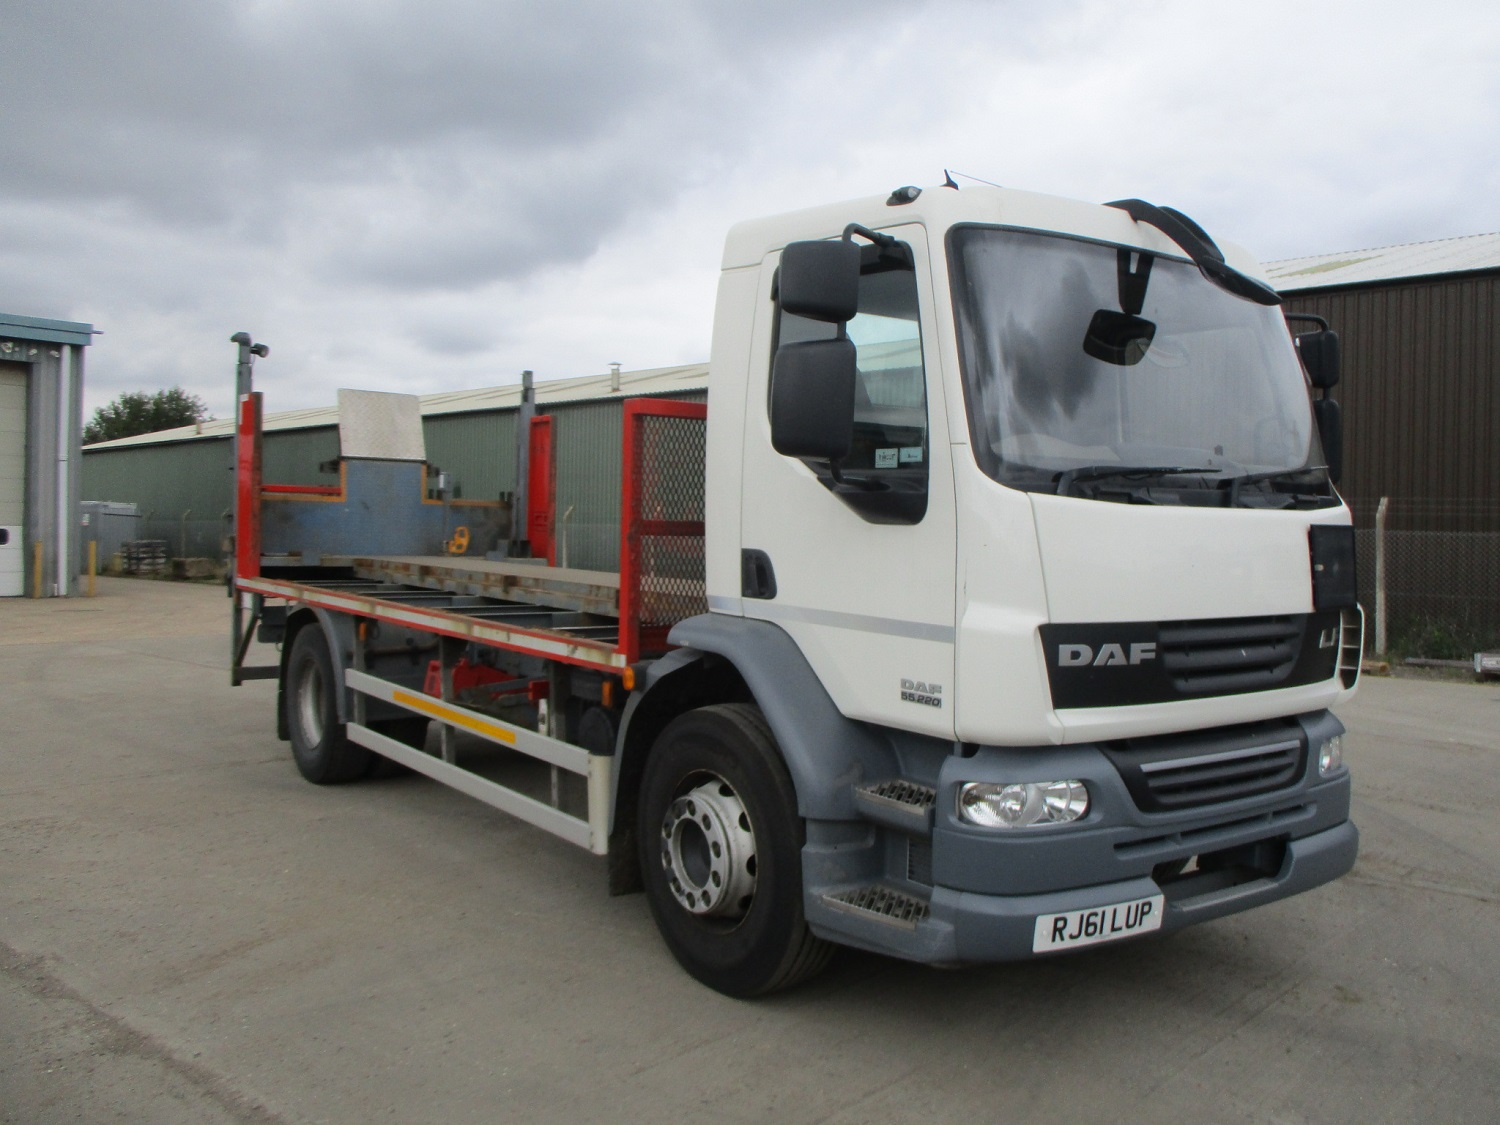 2012 Daf Lf55 220 18t With Ex Boc Gas Body Or As Chassis Cab Used Trucks Scaffolding Trucks Crane Mounted Trucks For Sale